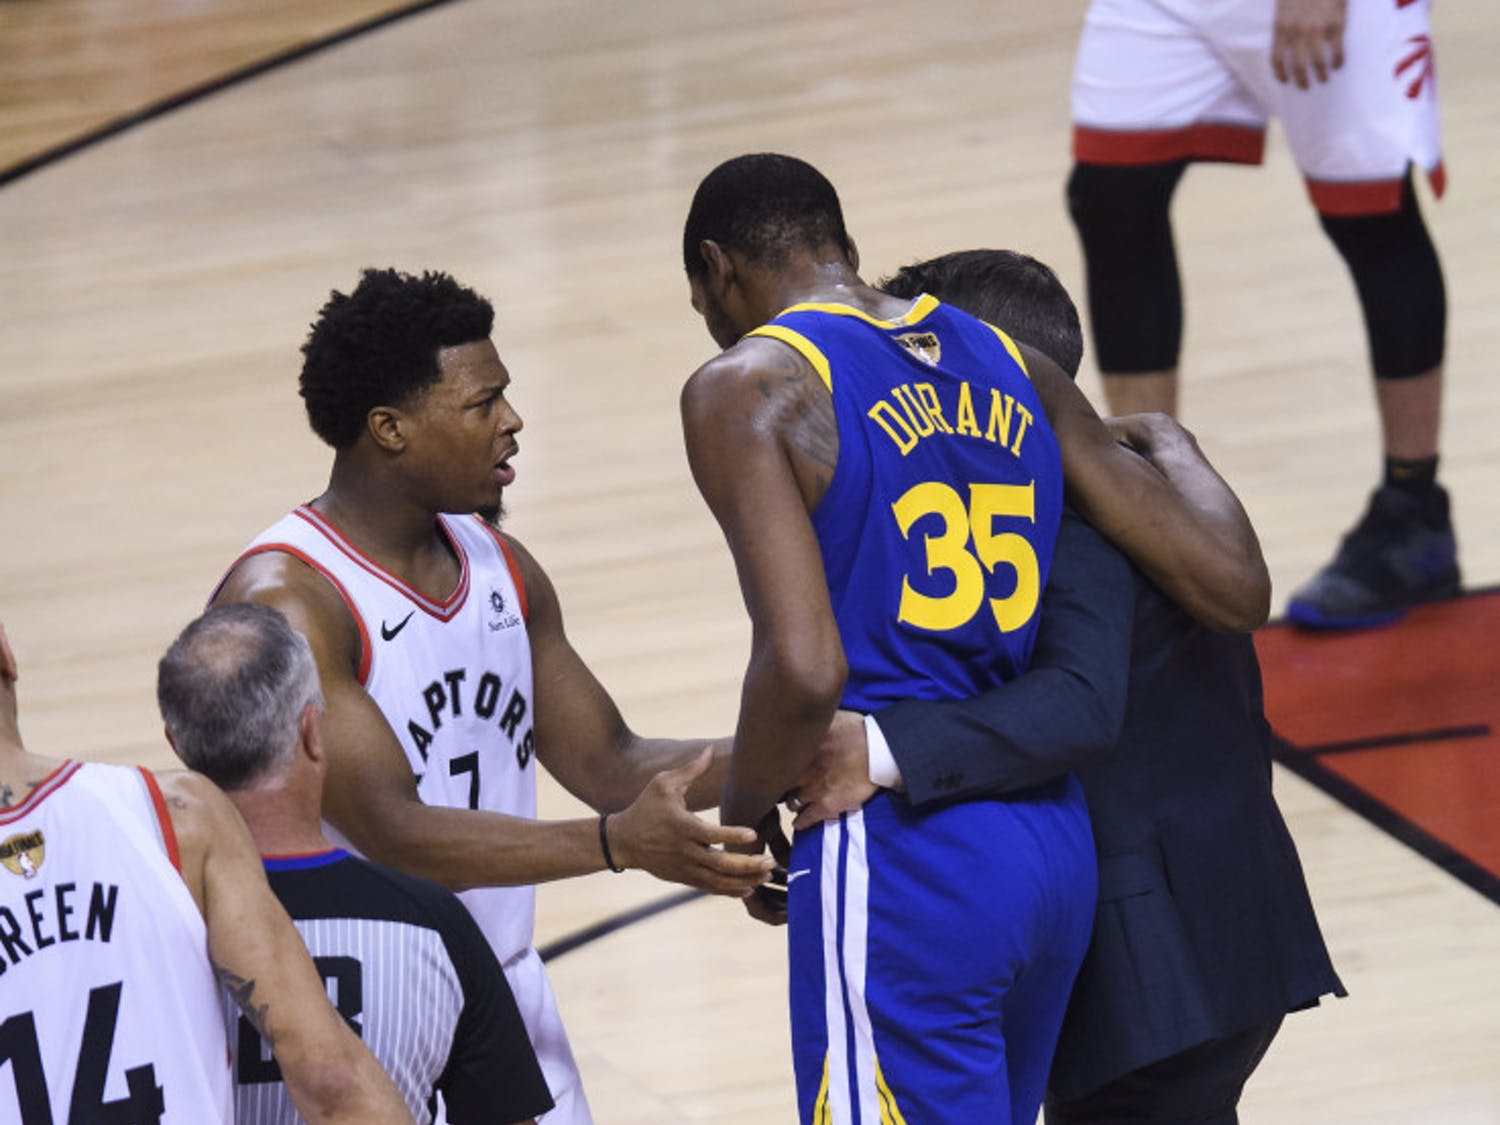 Warriors small forward Kevin Durant limps off the court after rupturing his Achilles in Game 5 of the NBA Finals on Monday night.